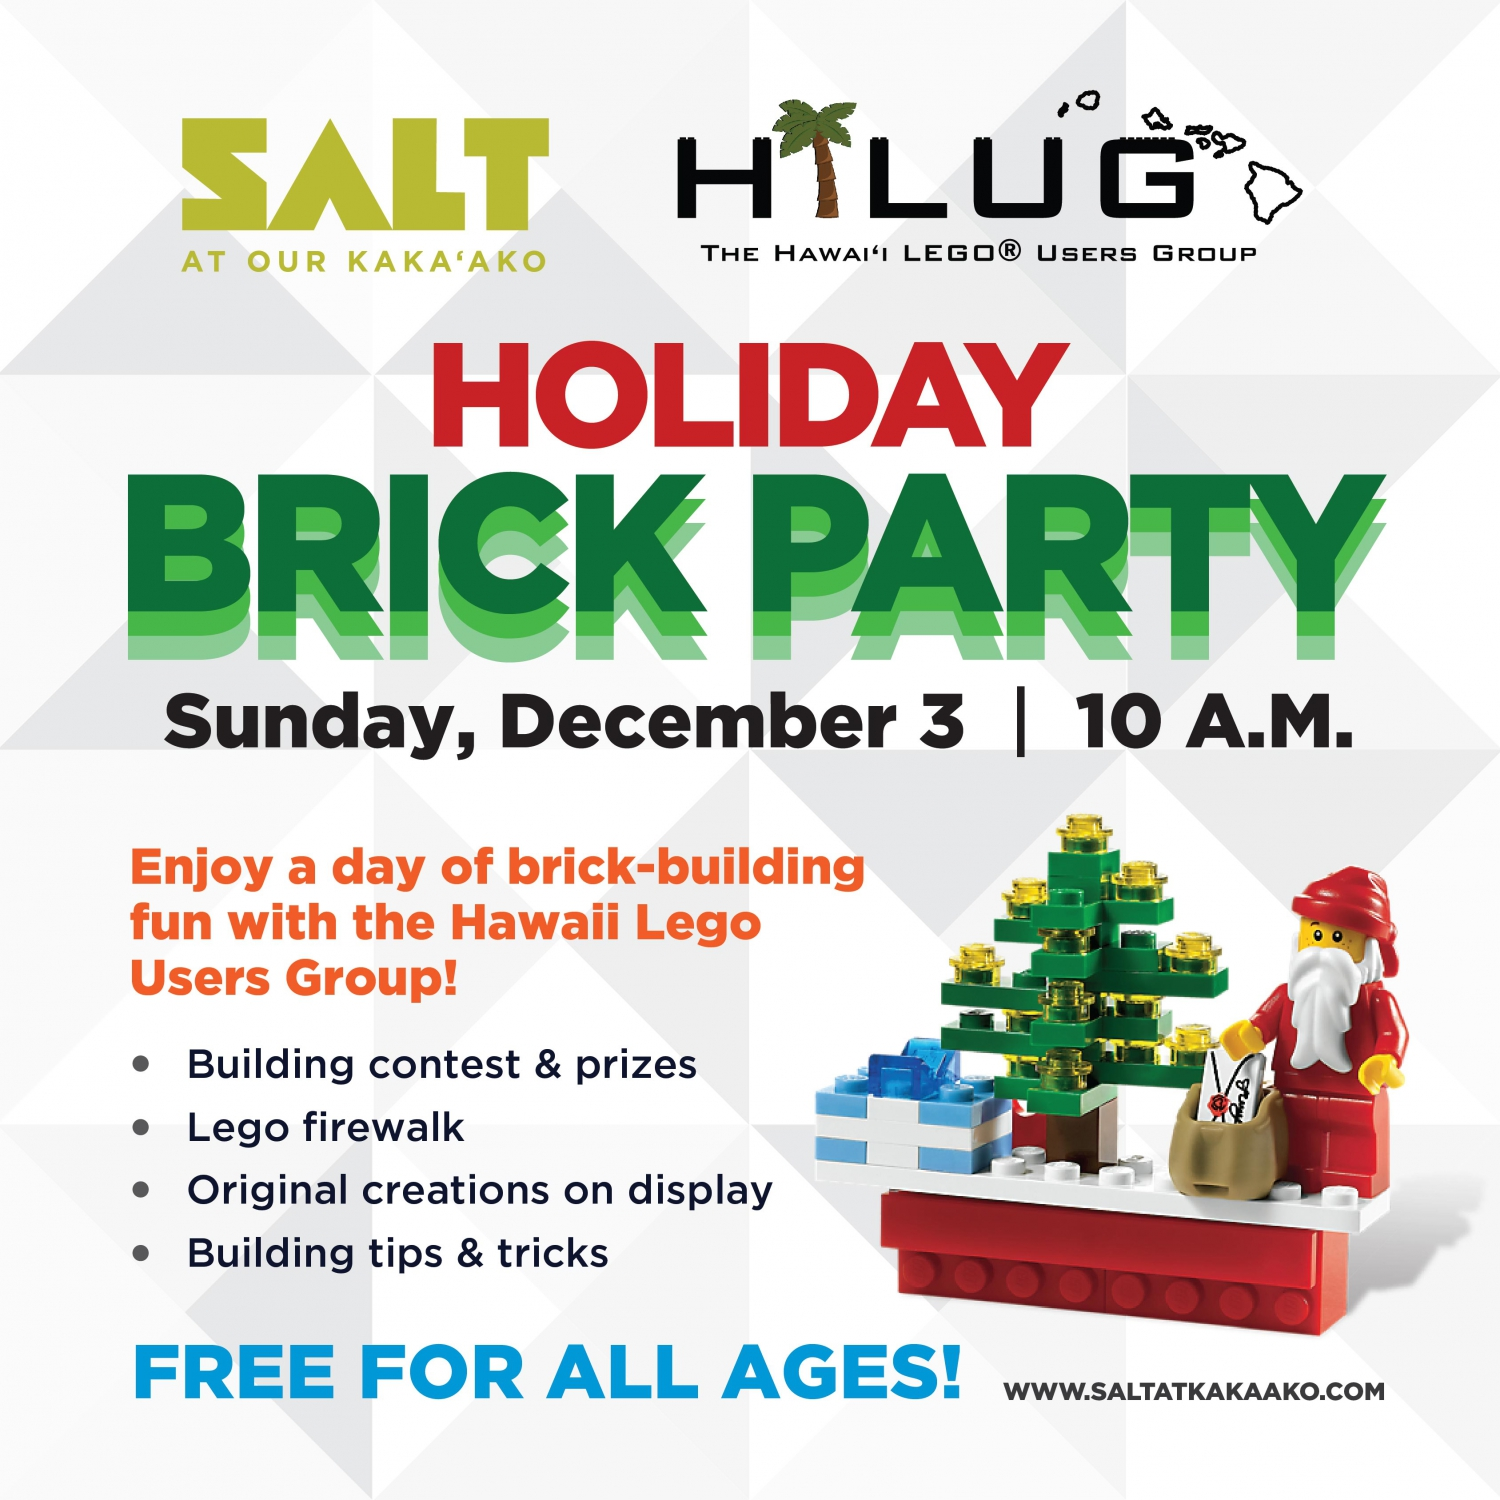 SALT at Our Kaka'ako Holiday Brick Party